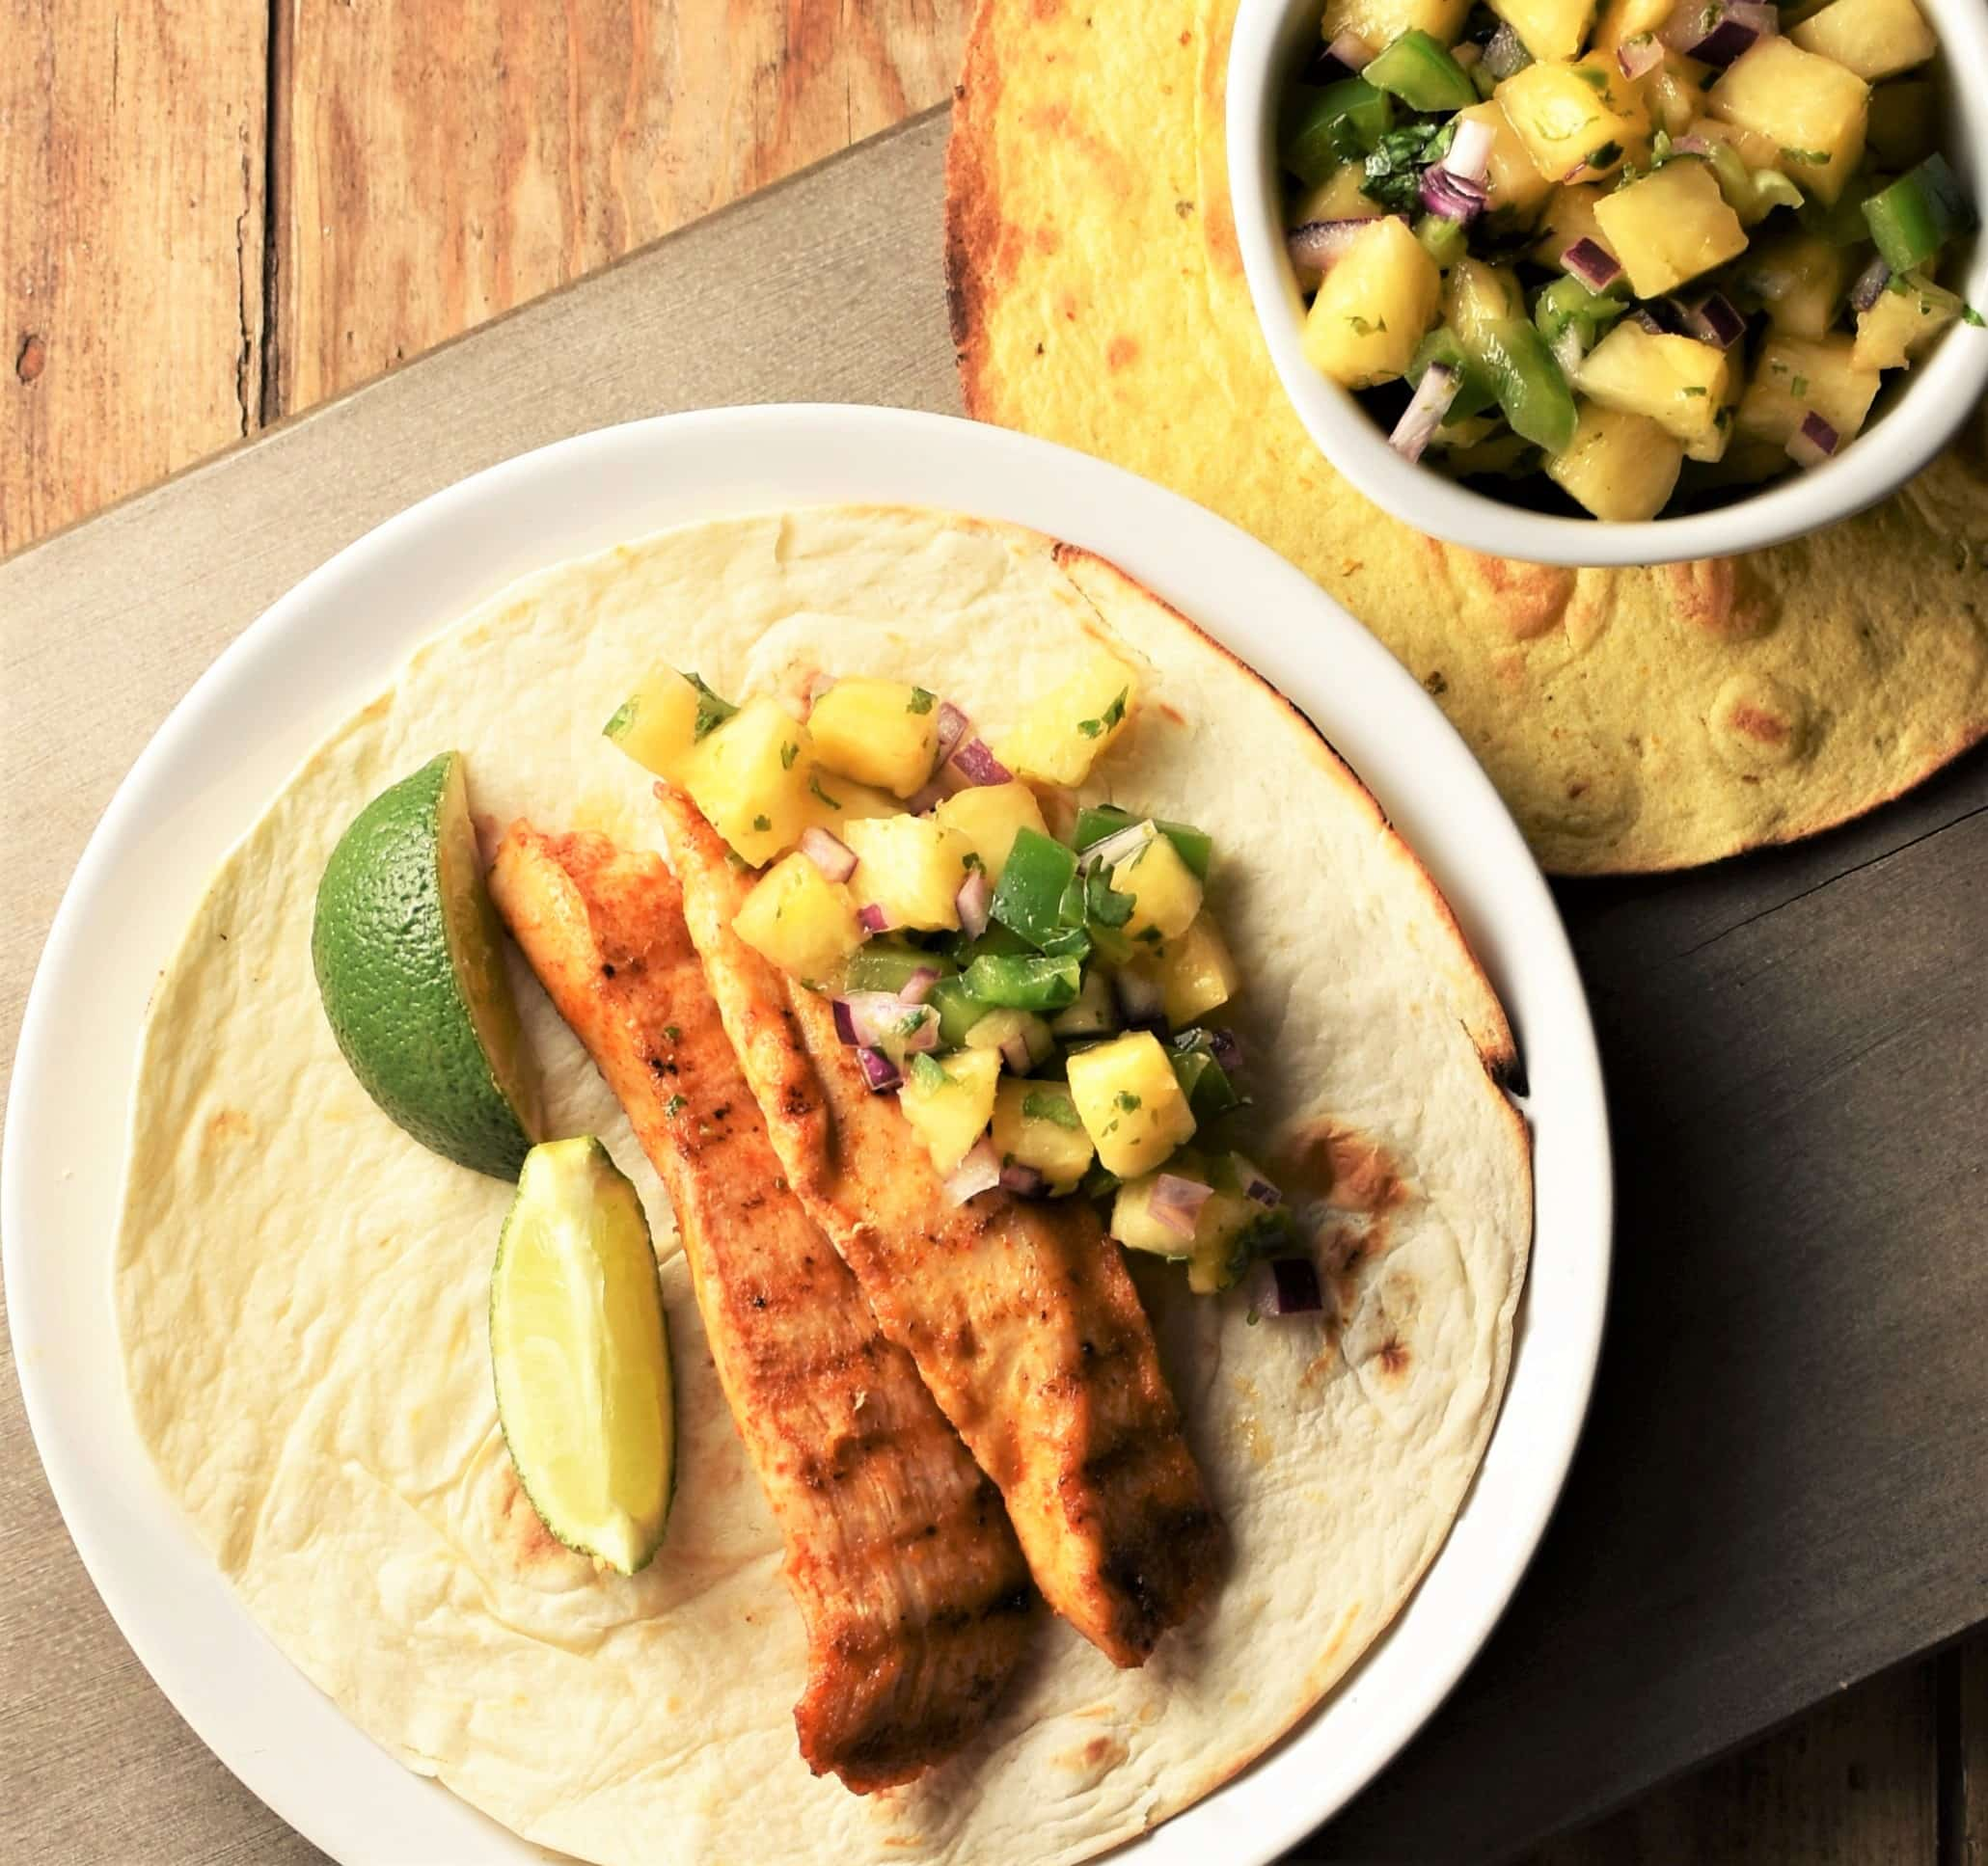 2 strips of grilled chicken with lime wedges and pineapple salsa in open tortilla with salsa in top right corner.